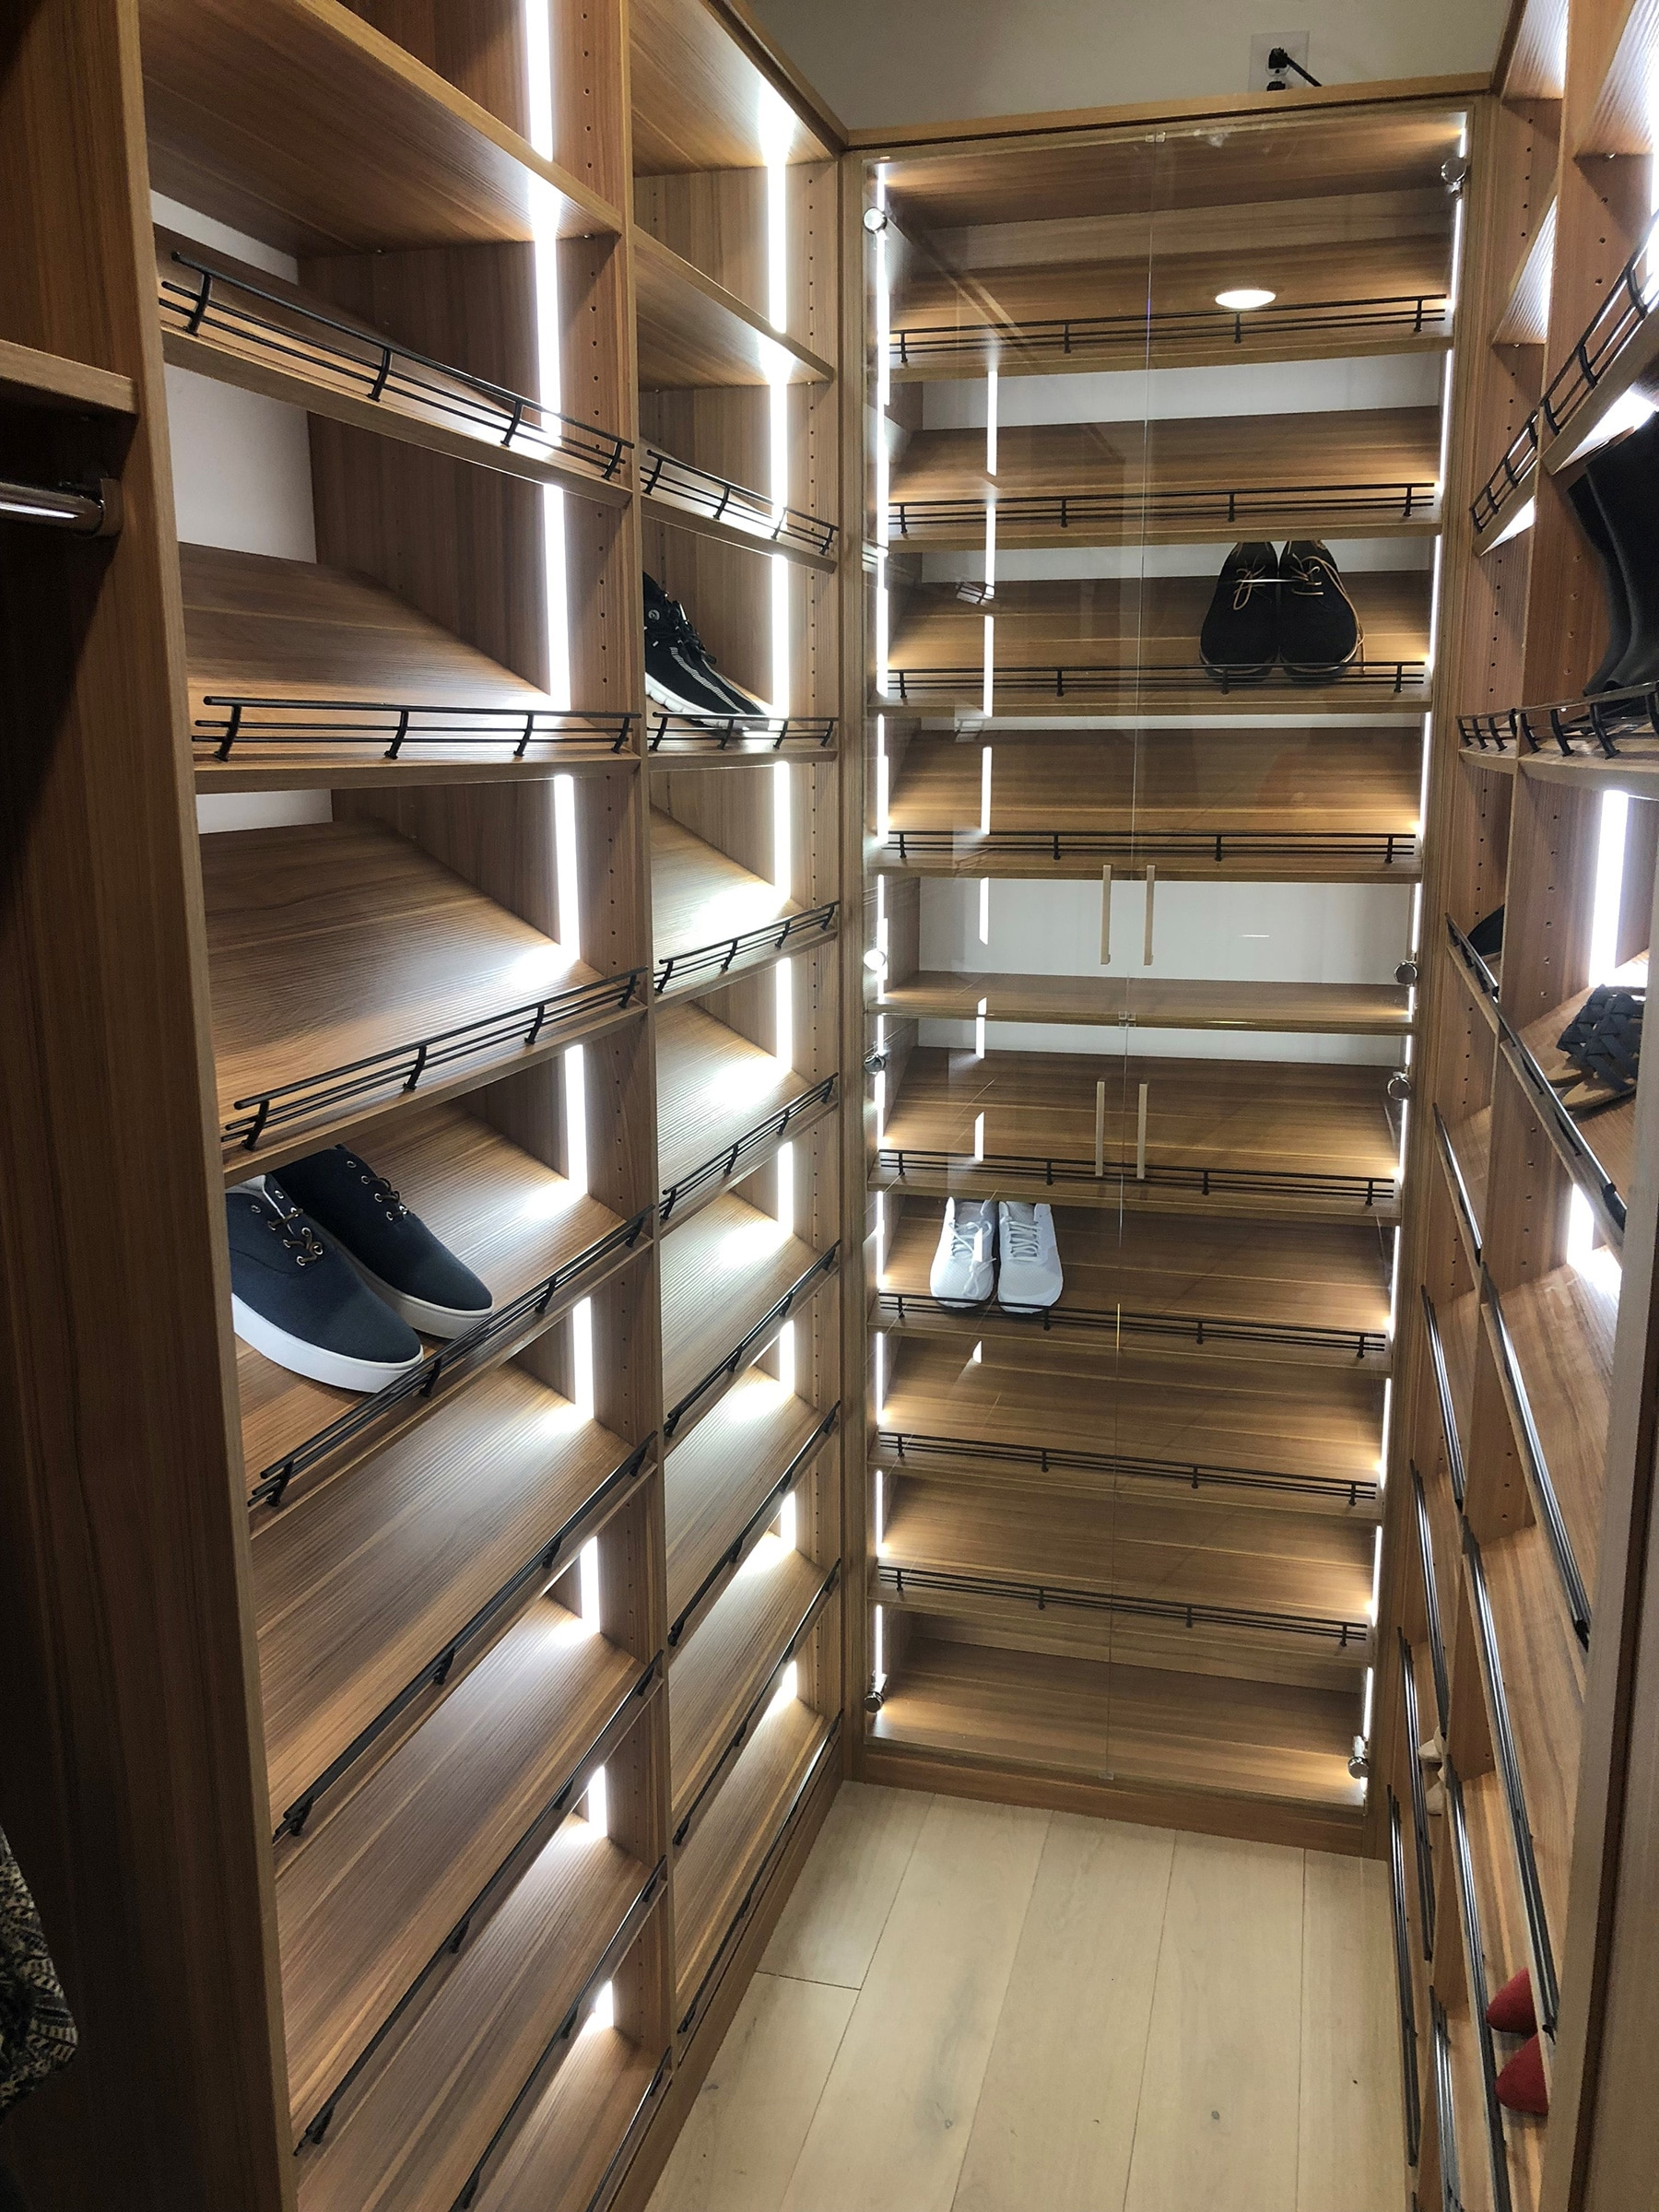 Completed Project Galleries Interior Design Inspiration For Your Las Vegas Closet